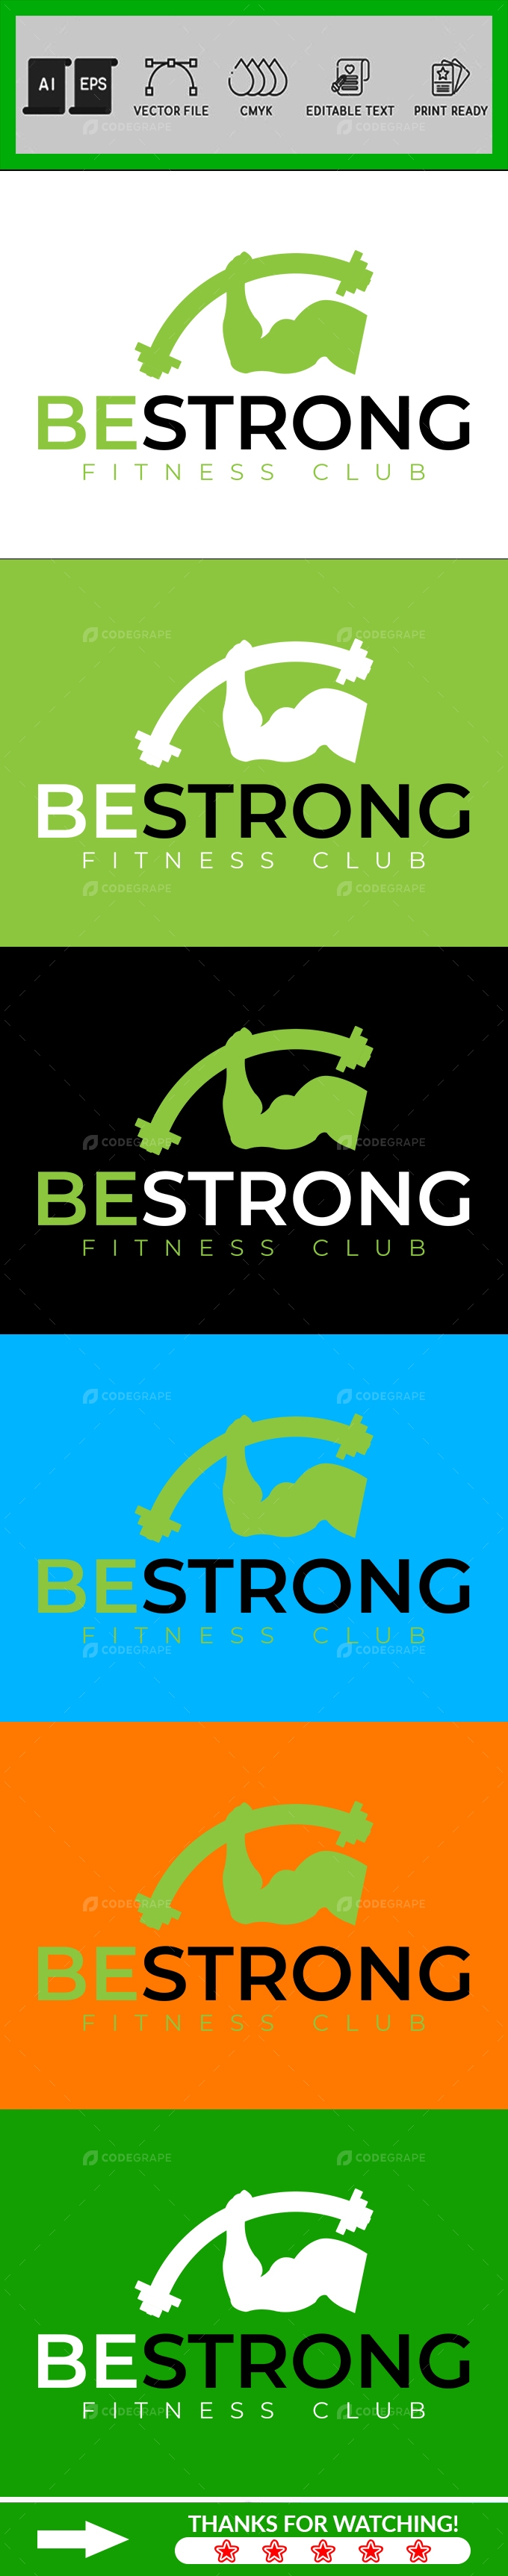 Minimalist Gym and Fitness Logo Design Template